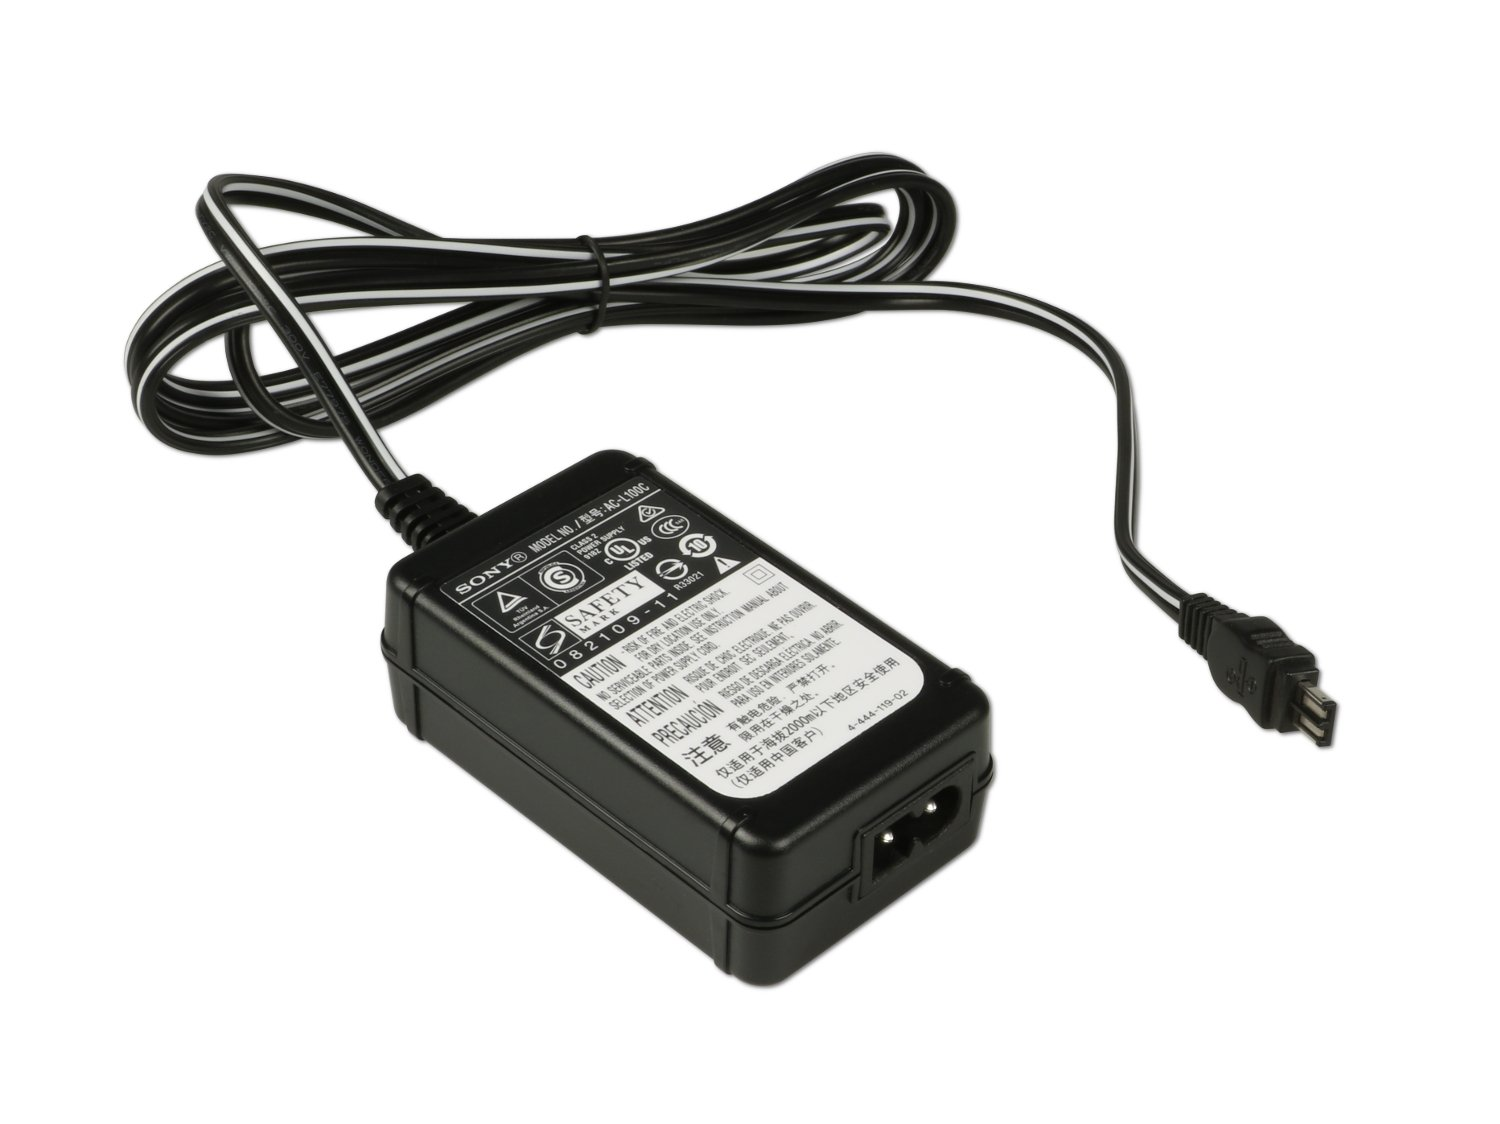 AC Adapter for DCR-DVD101 and DCR-DVD201